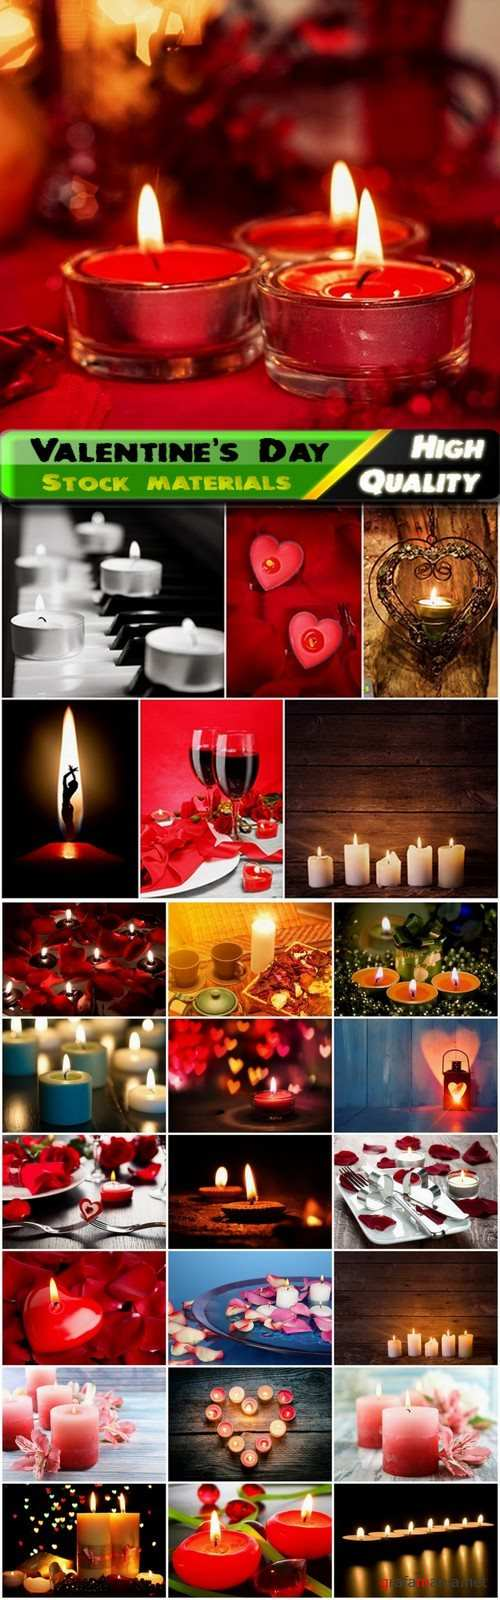 Romantic cards for Valentines Day with hearts and candles - 25 HQ Jpg